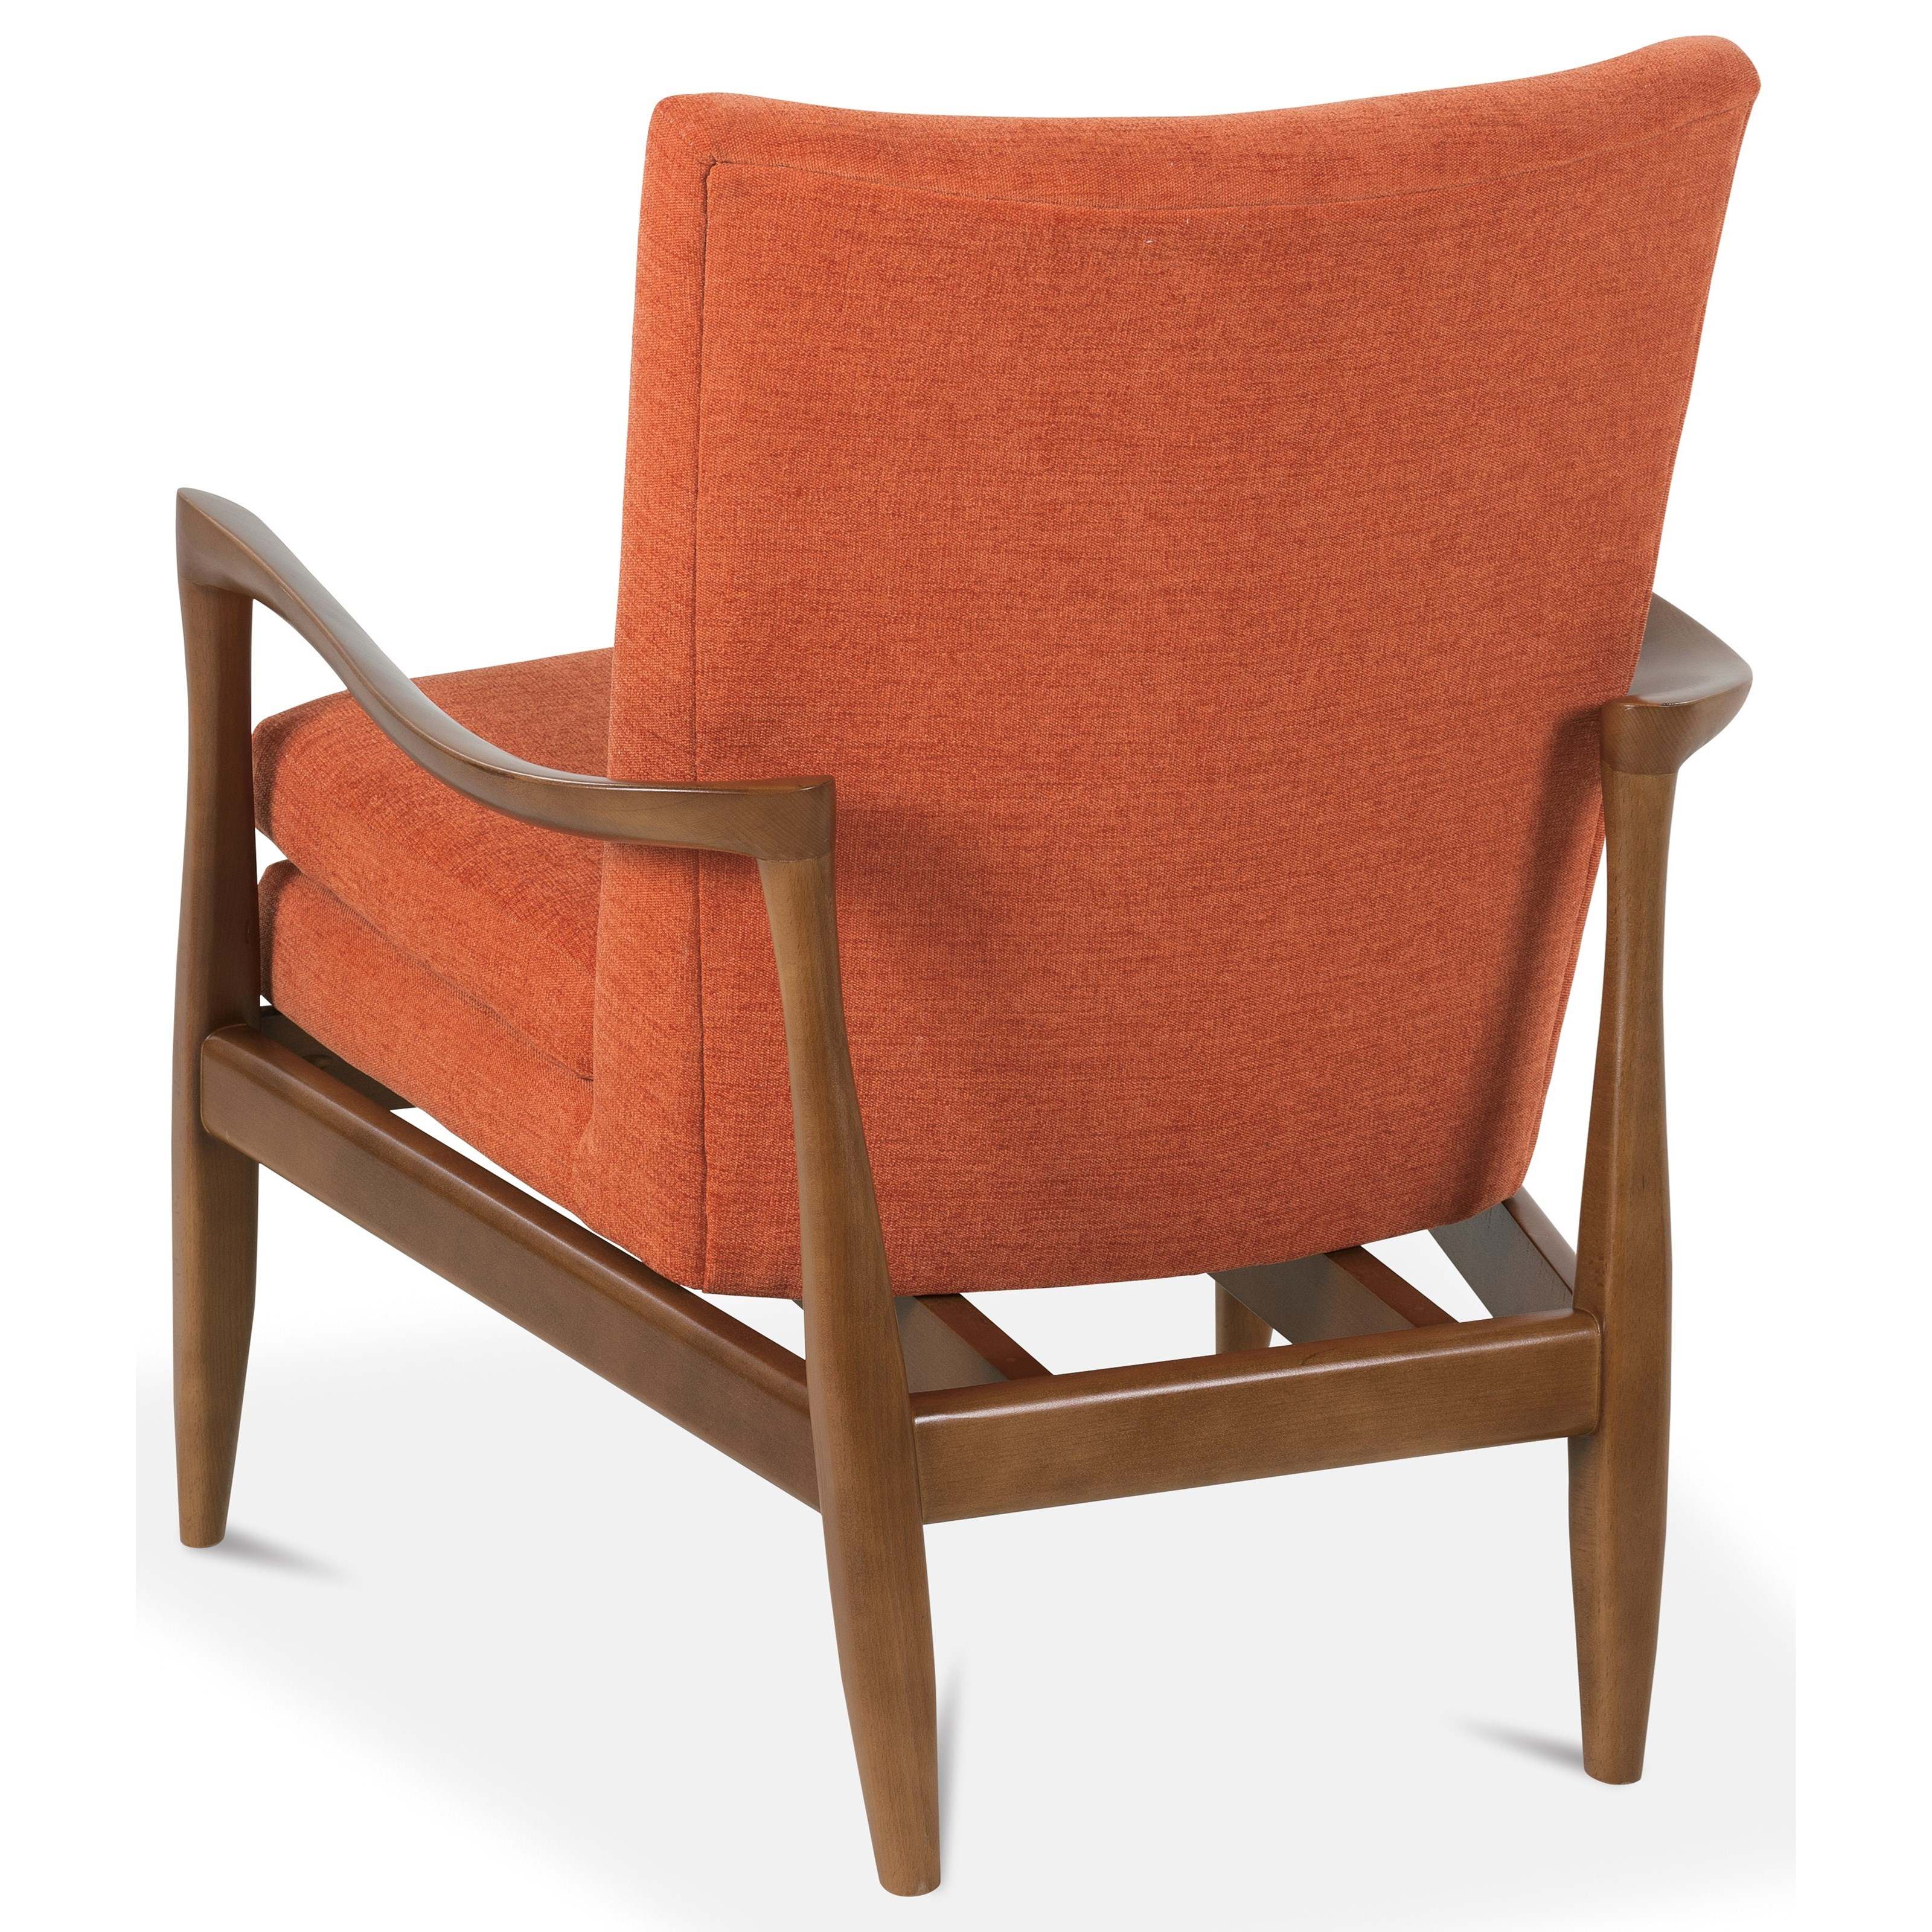 Rowe chairs and accents harris wood frame accent chair for Timber frame accents